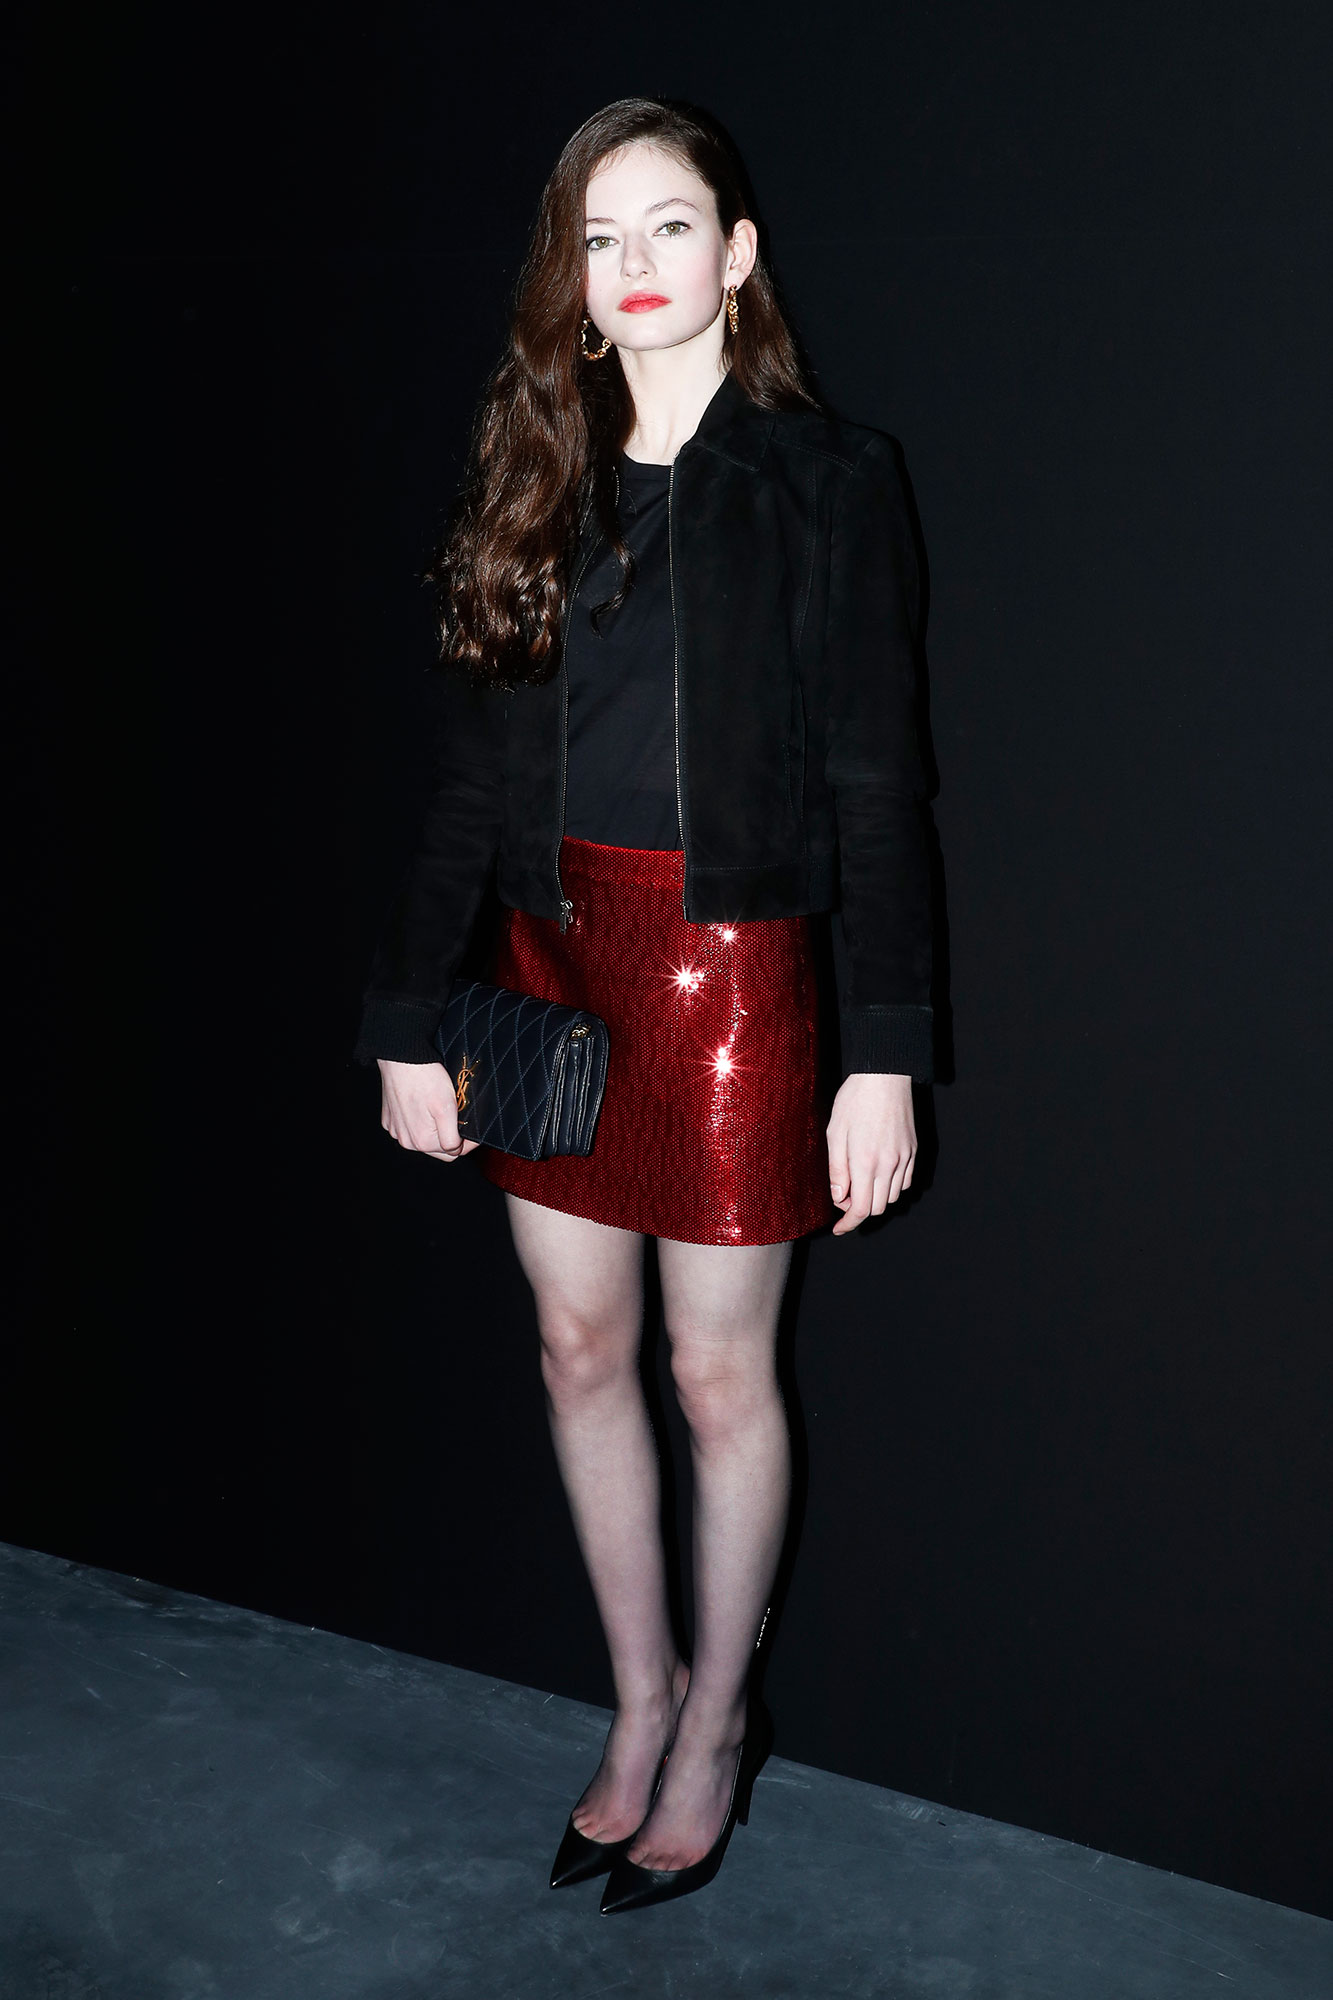 Mackenzie Foy See the Stars' Street Style at Paris Fashion Week - The actress made the case for matching your lipstick to your miniskirt at Saint Laurent on Tuesday, February 26.